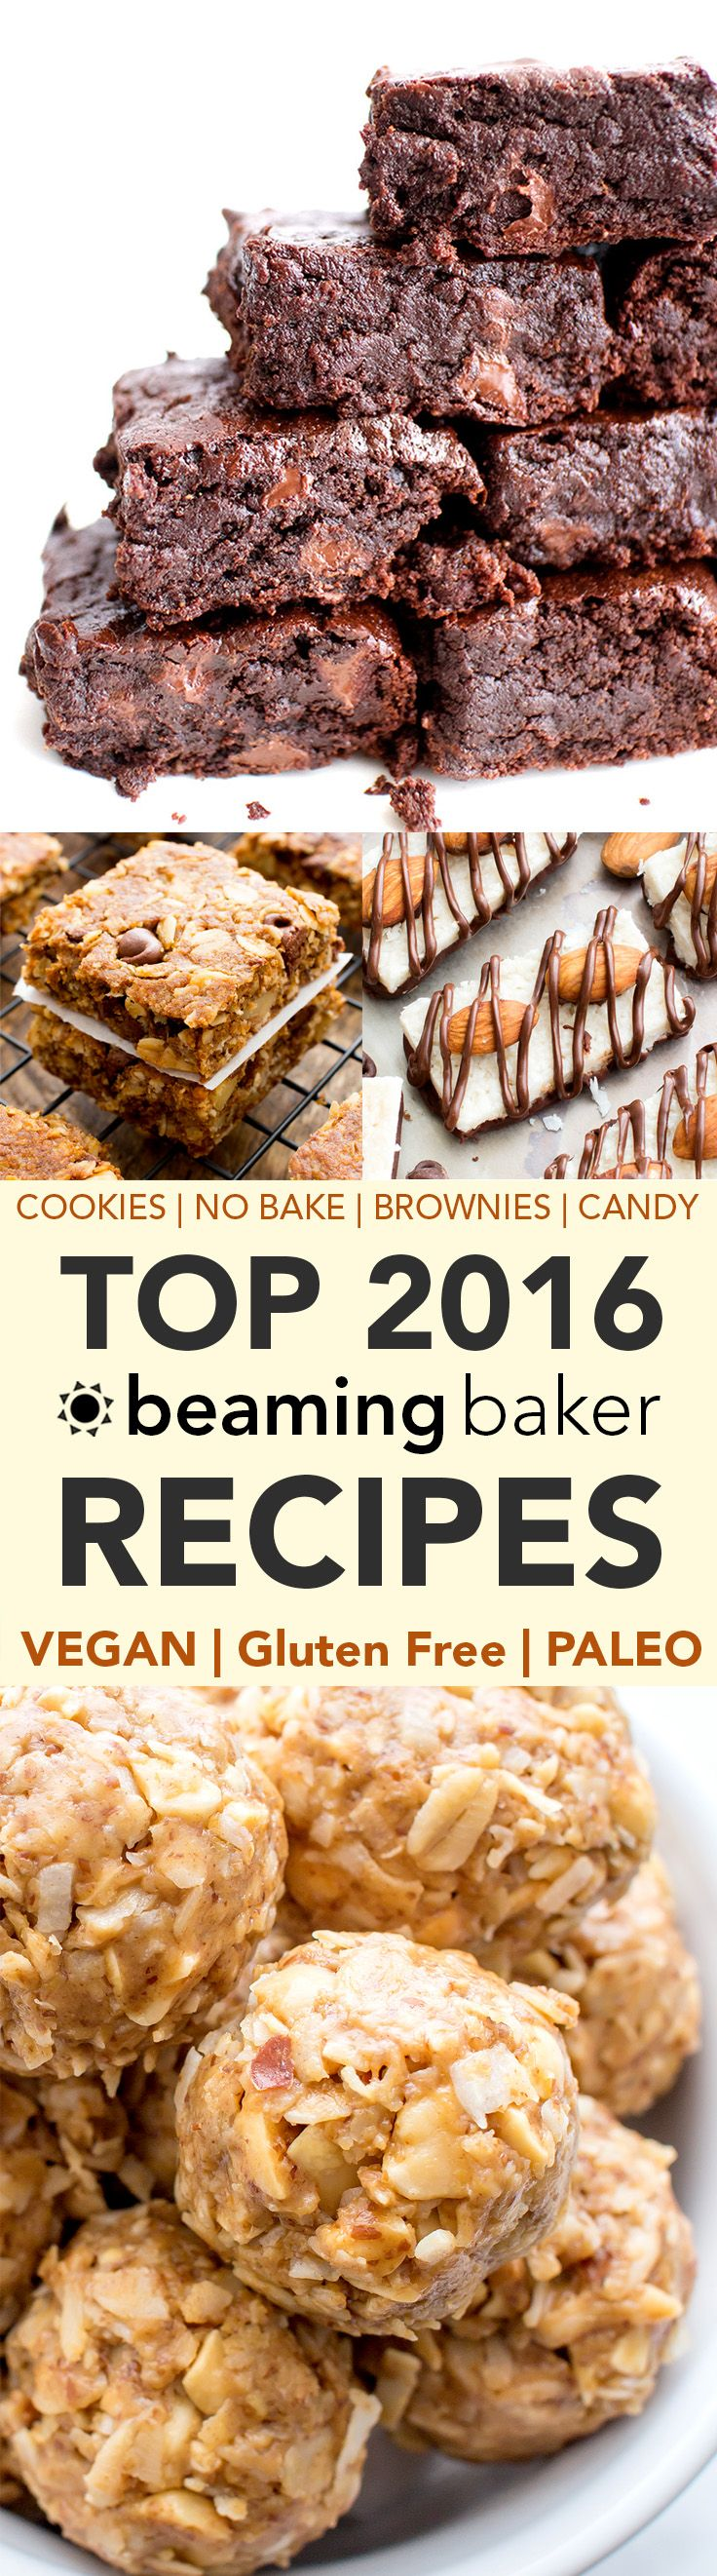 Top 2016 Recipes: A thrilling & sometimes nostalgic look back on the top 2016 recipes on Beaming Baker. Vegan, Gluten Free, Dairy-Free and Paleo treats. #Vegan #GlutenFree #Paleo #BeamingBaker | BeamingBaker.com